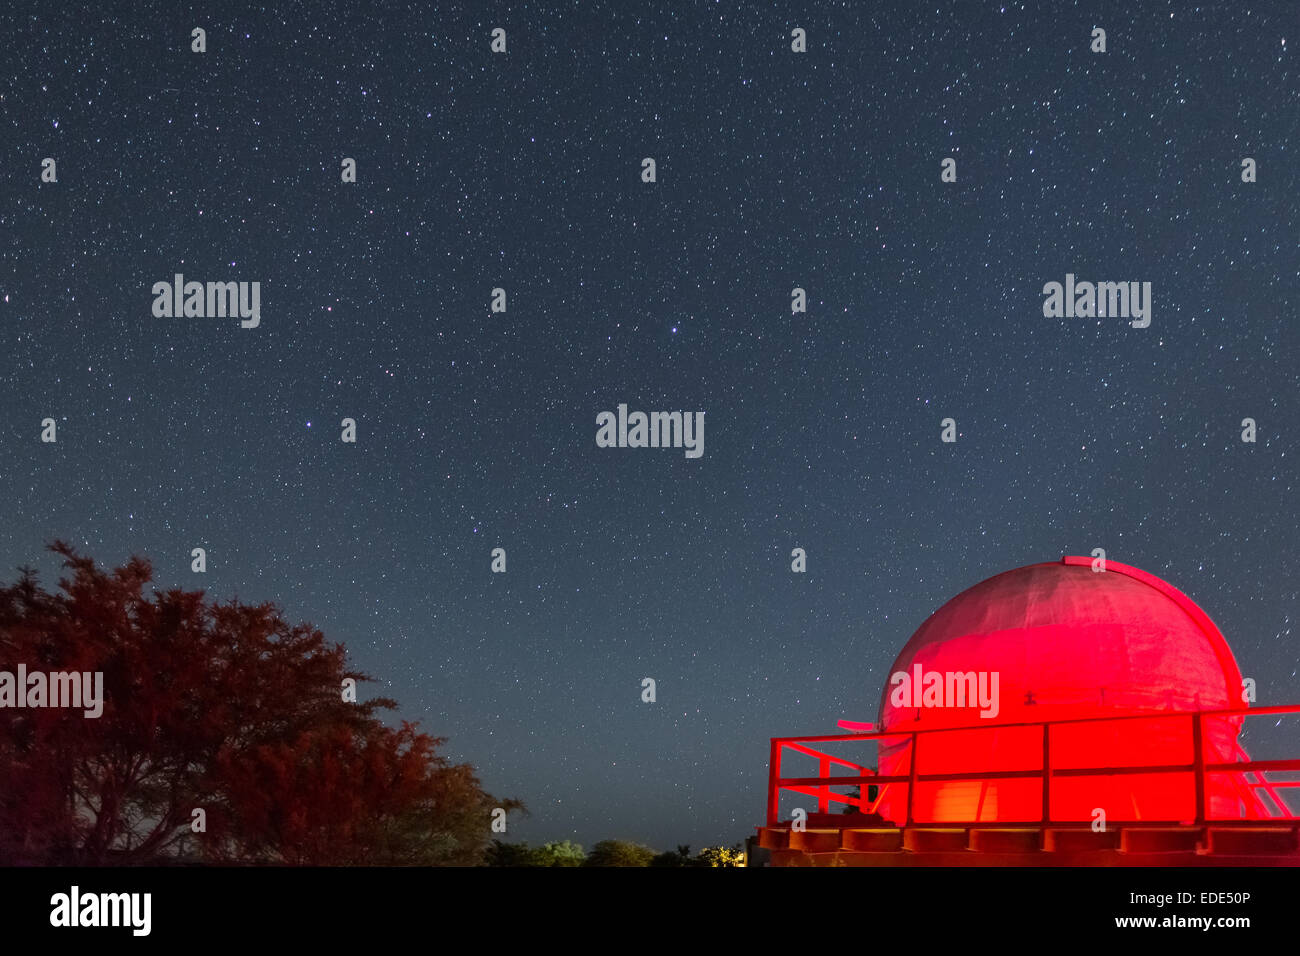 Star Watching Stock Photos & Star Watching Stock Images - Alamy